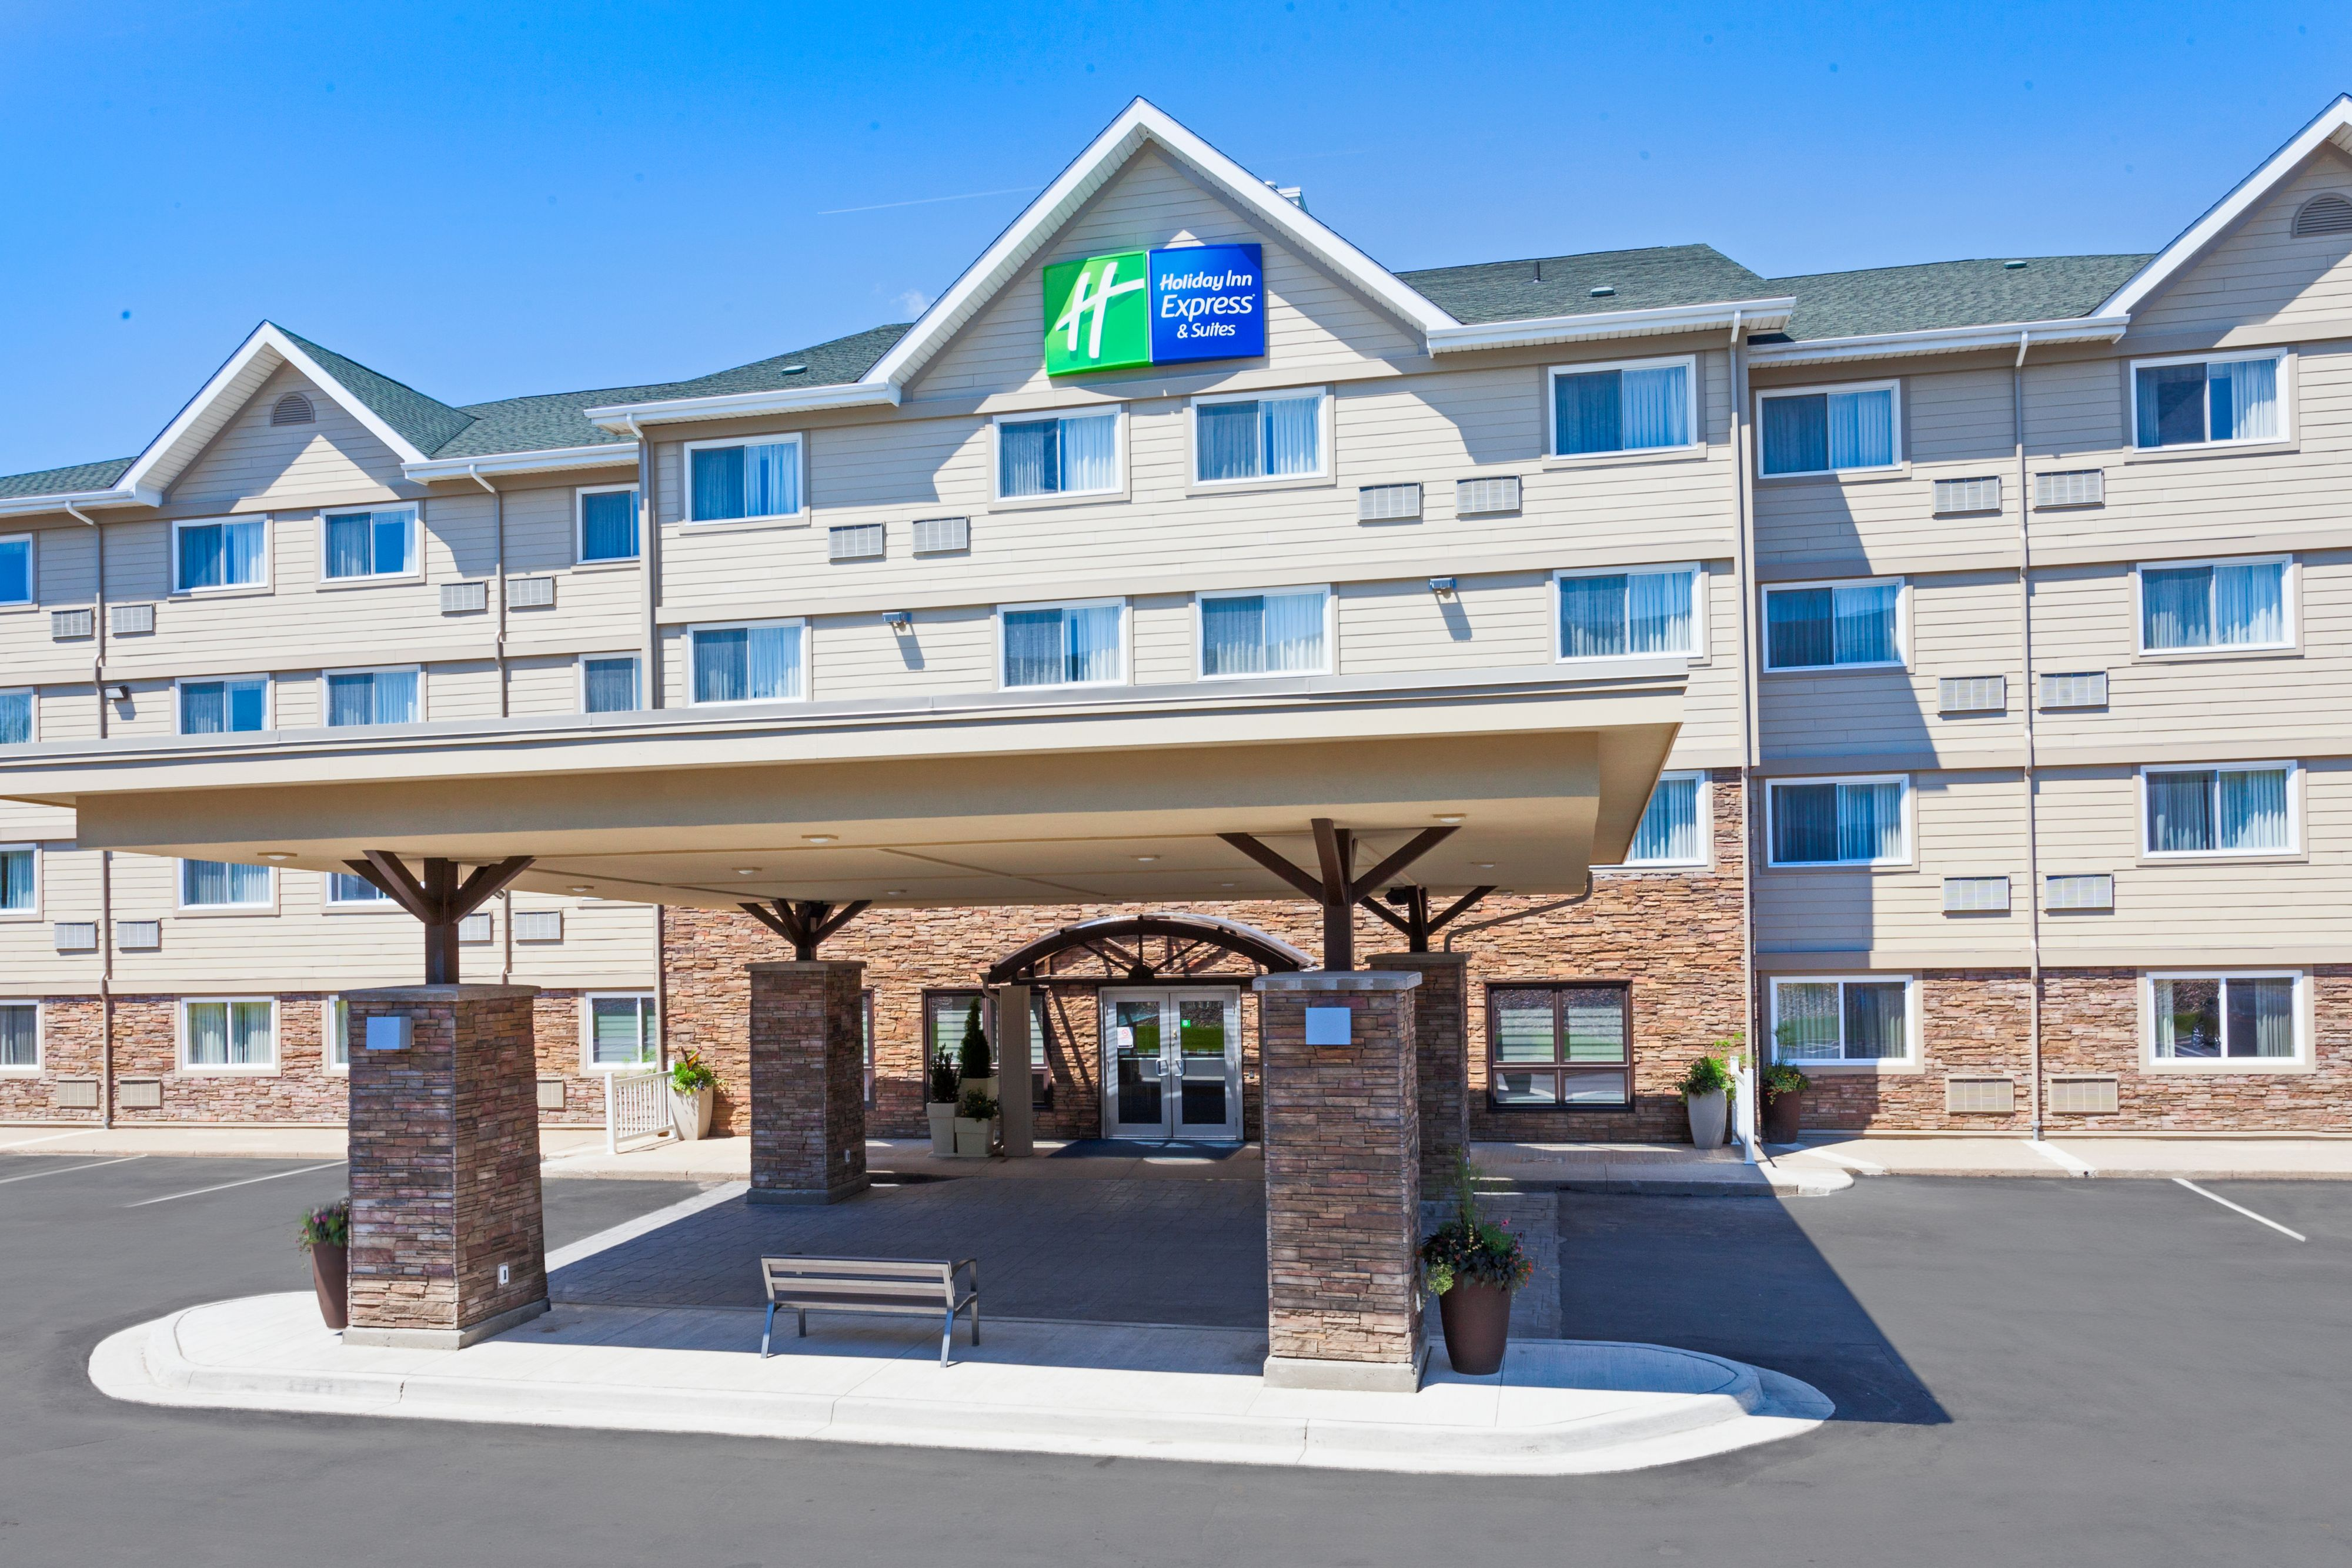 Holiday Inn Express Amp Suites Fredericksburg